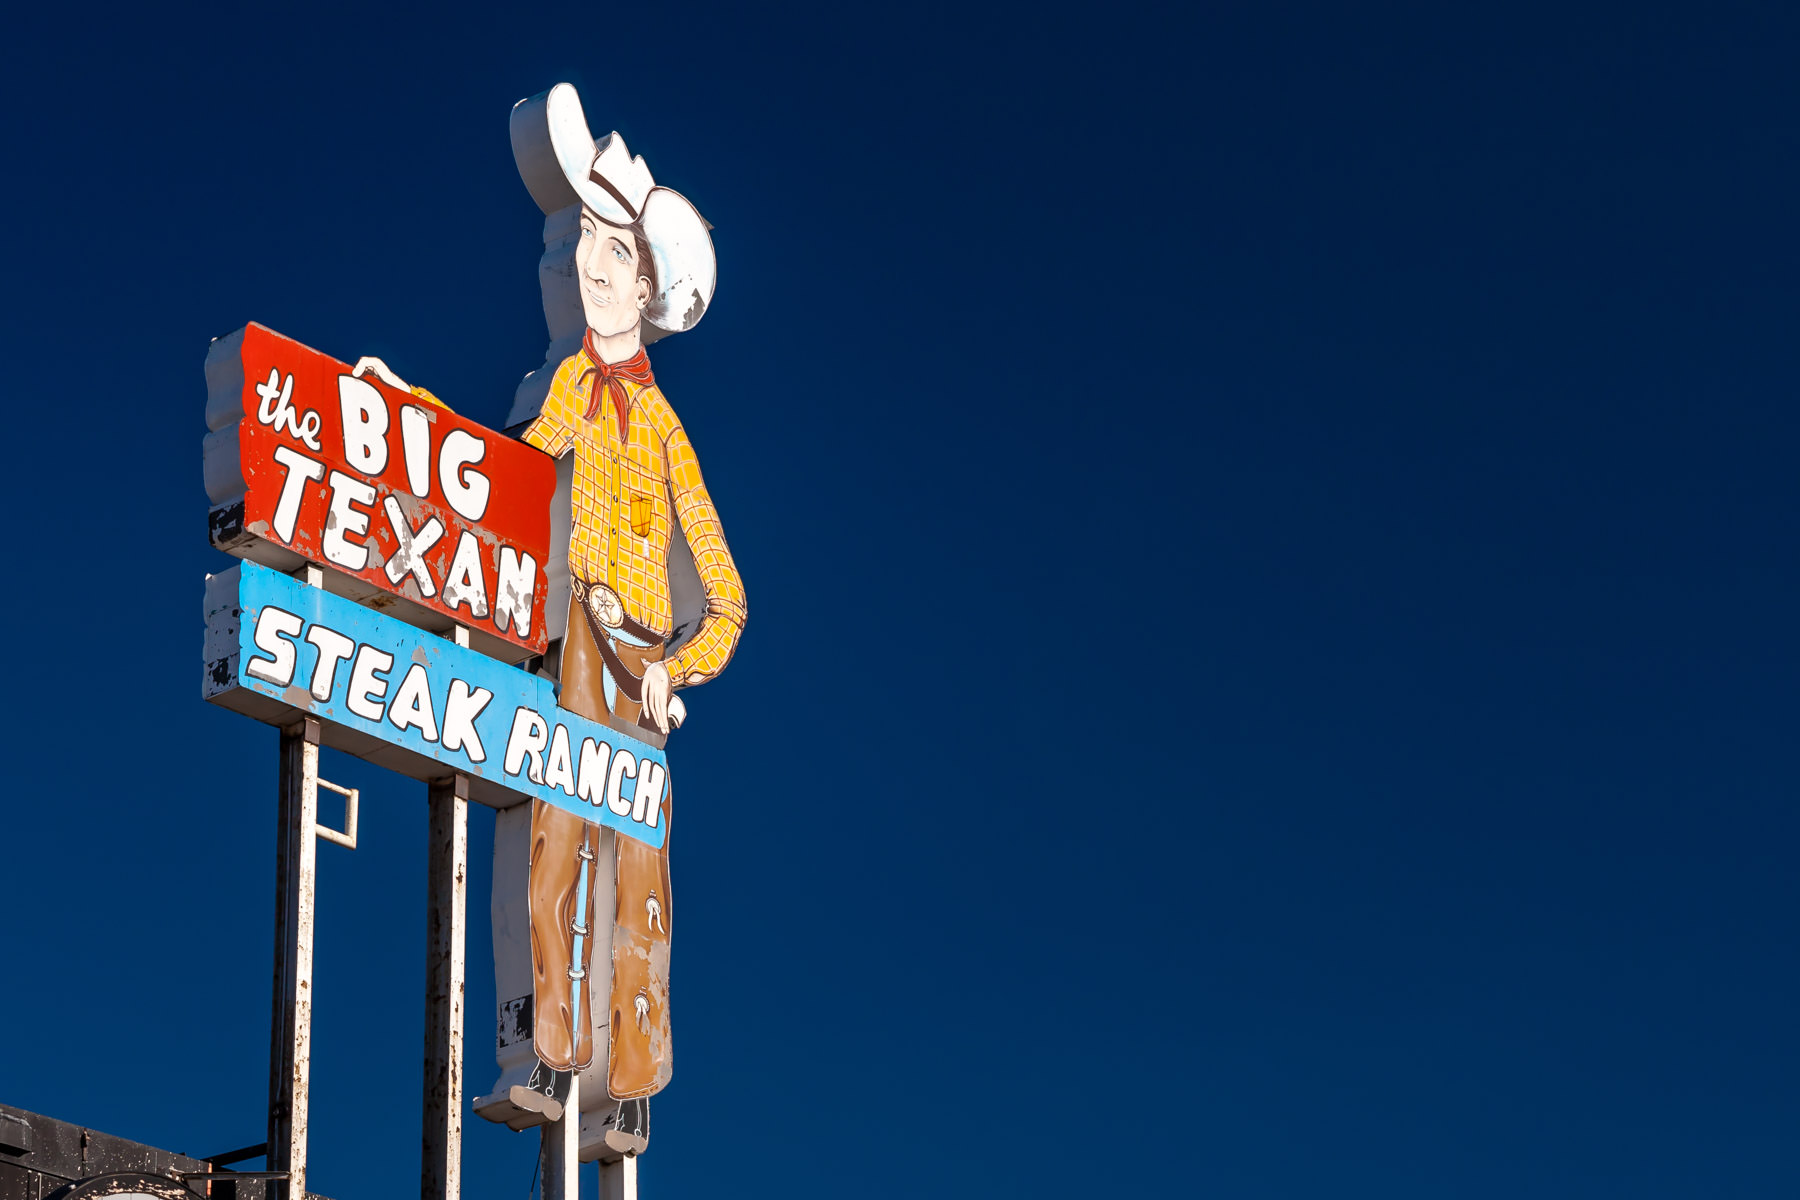 The sign of Amarillo, Texas' legendary Big Texan Steak Ranch rises into the clear, blue sky of the Texas Panhandle.